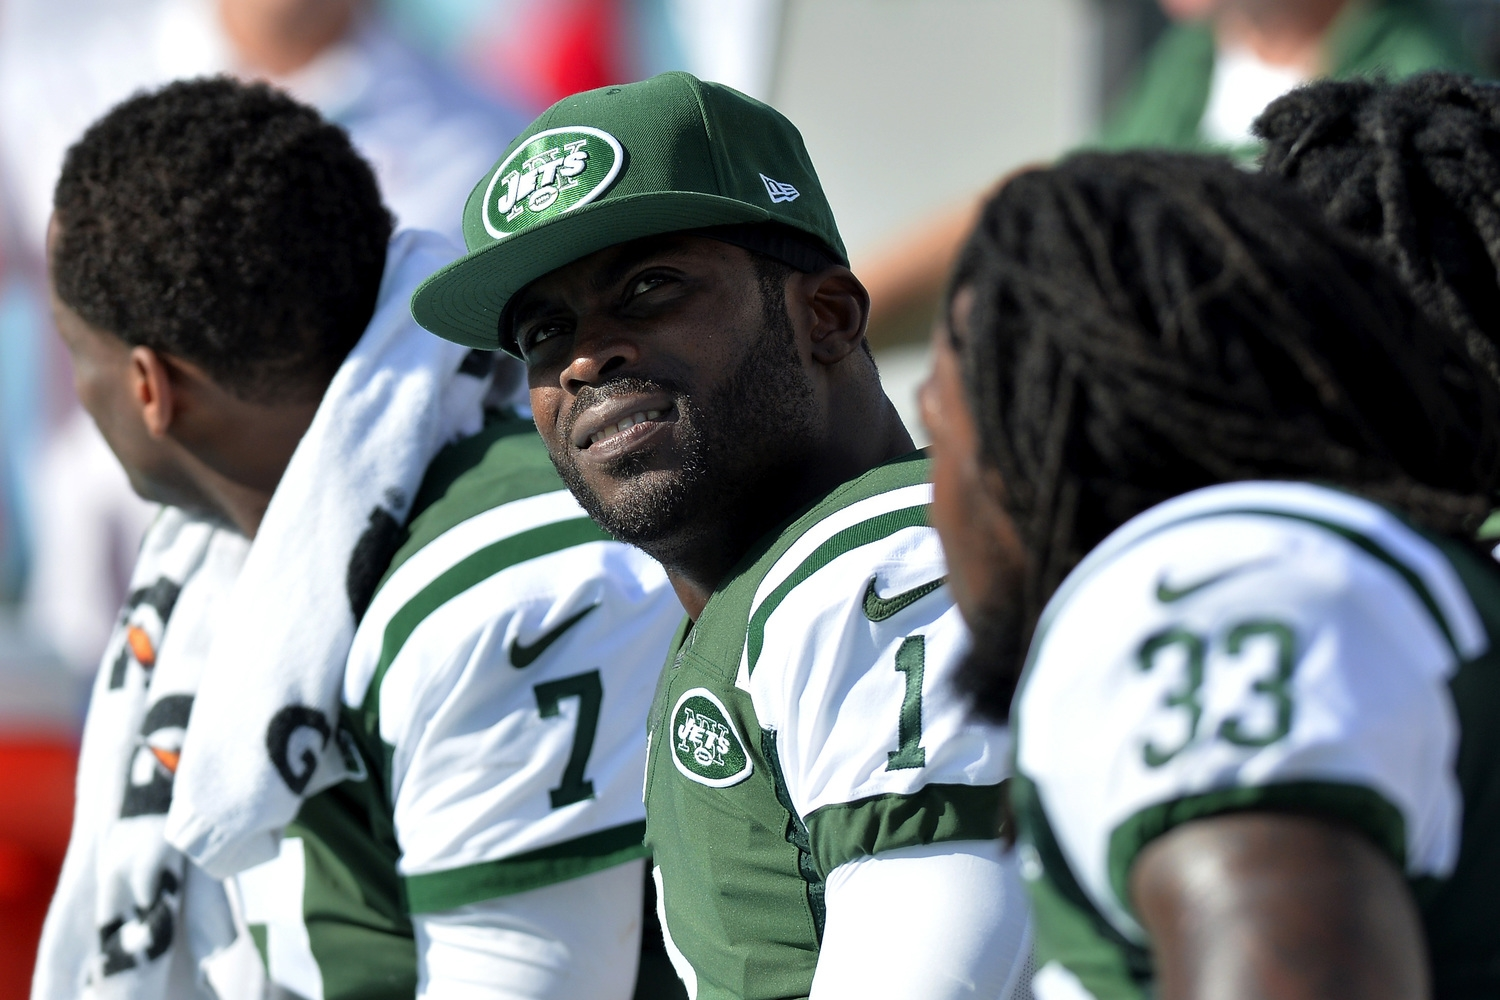 That moment when you realize you're not good enough to start for the freakin' Jets.(pic via USATSI)